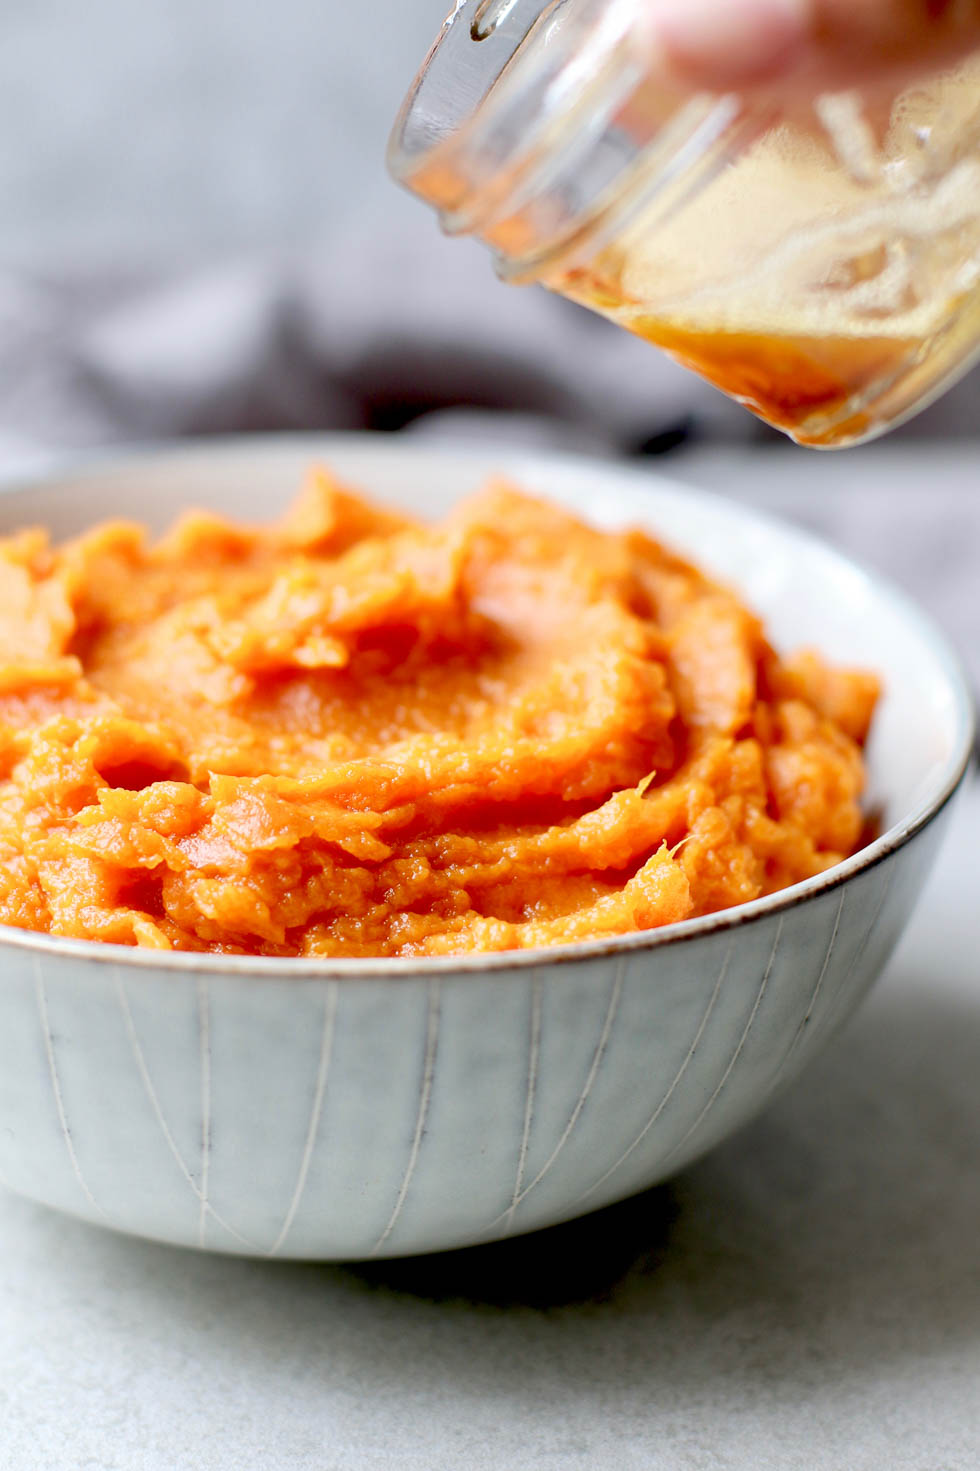 Make Brown Butter Whipped Sweet Potatoes